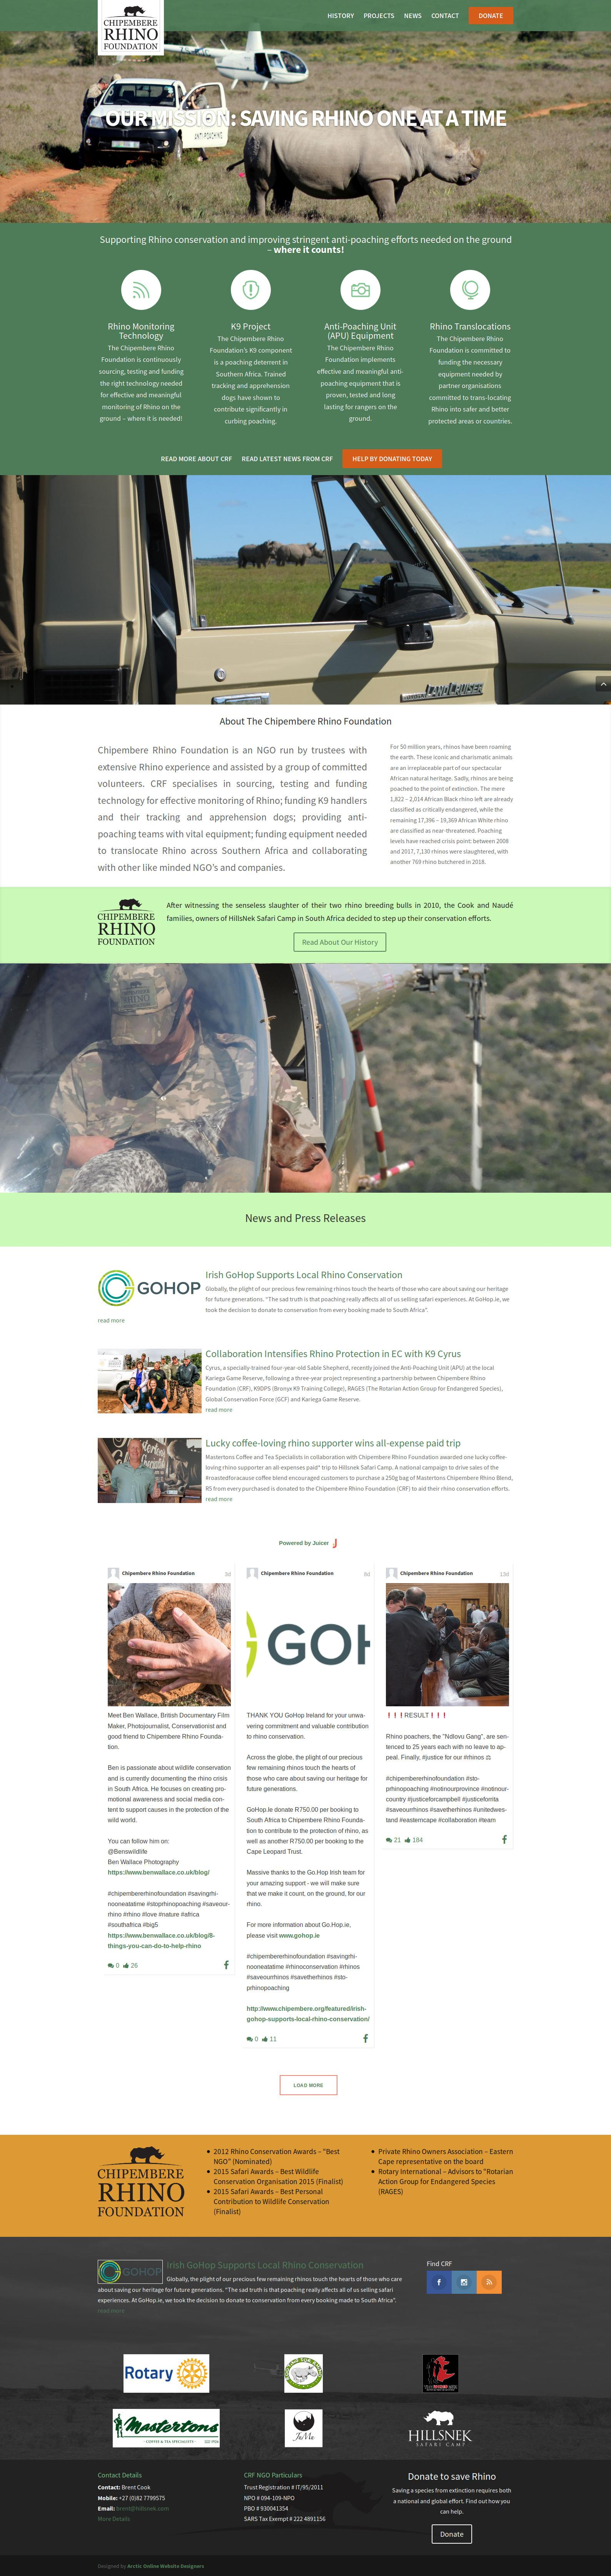 Home Page Screenshot of WordPress Website Design For Chipembere Rhino Foundation in South Africa